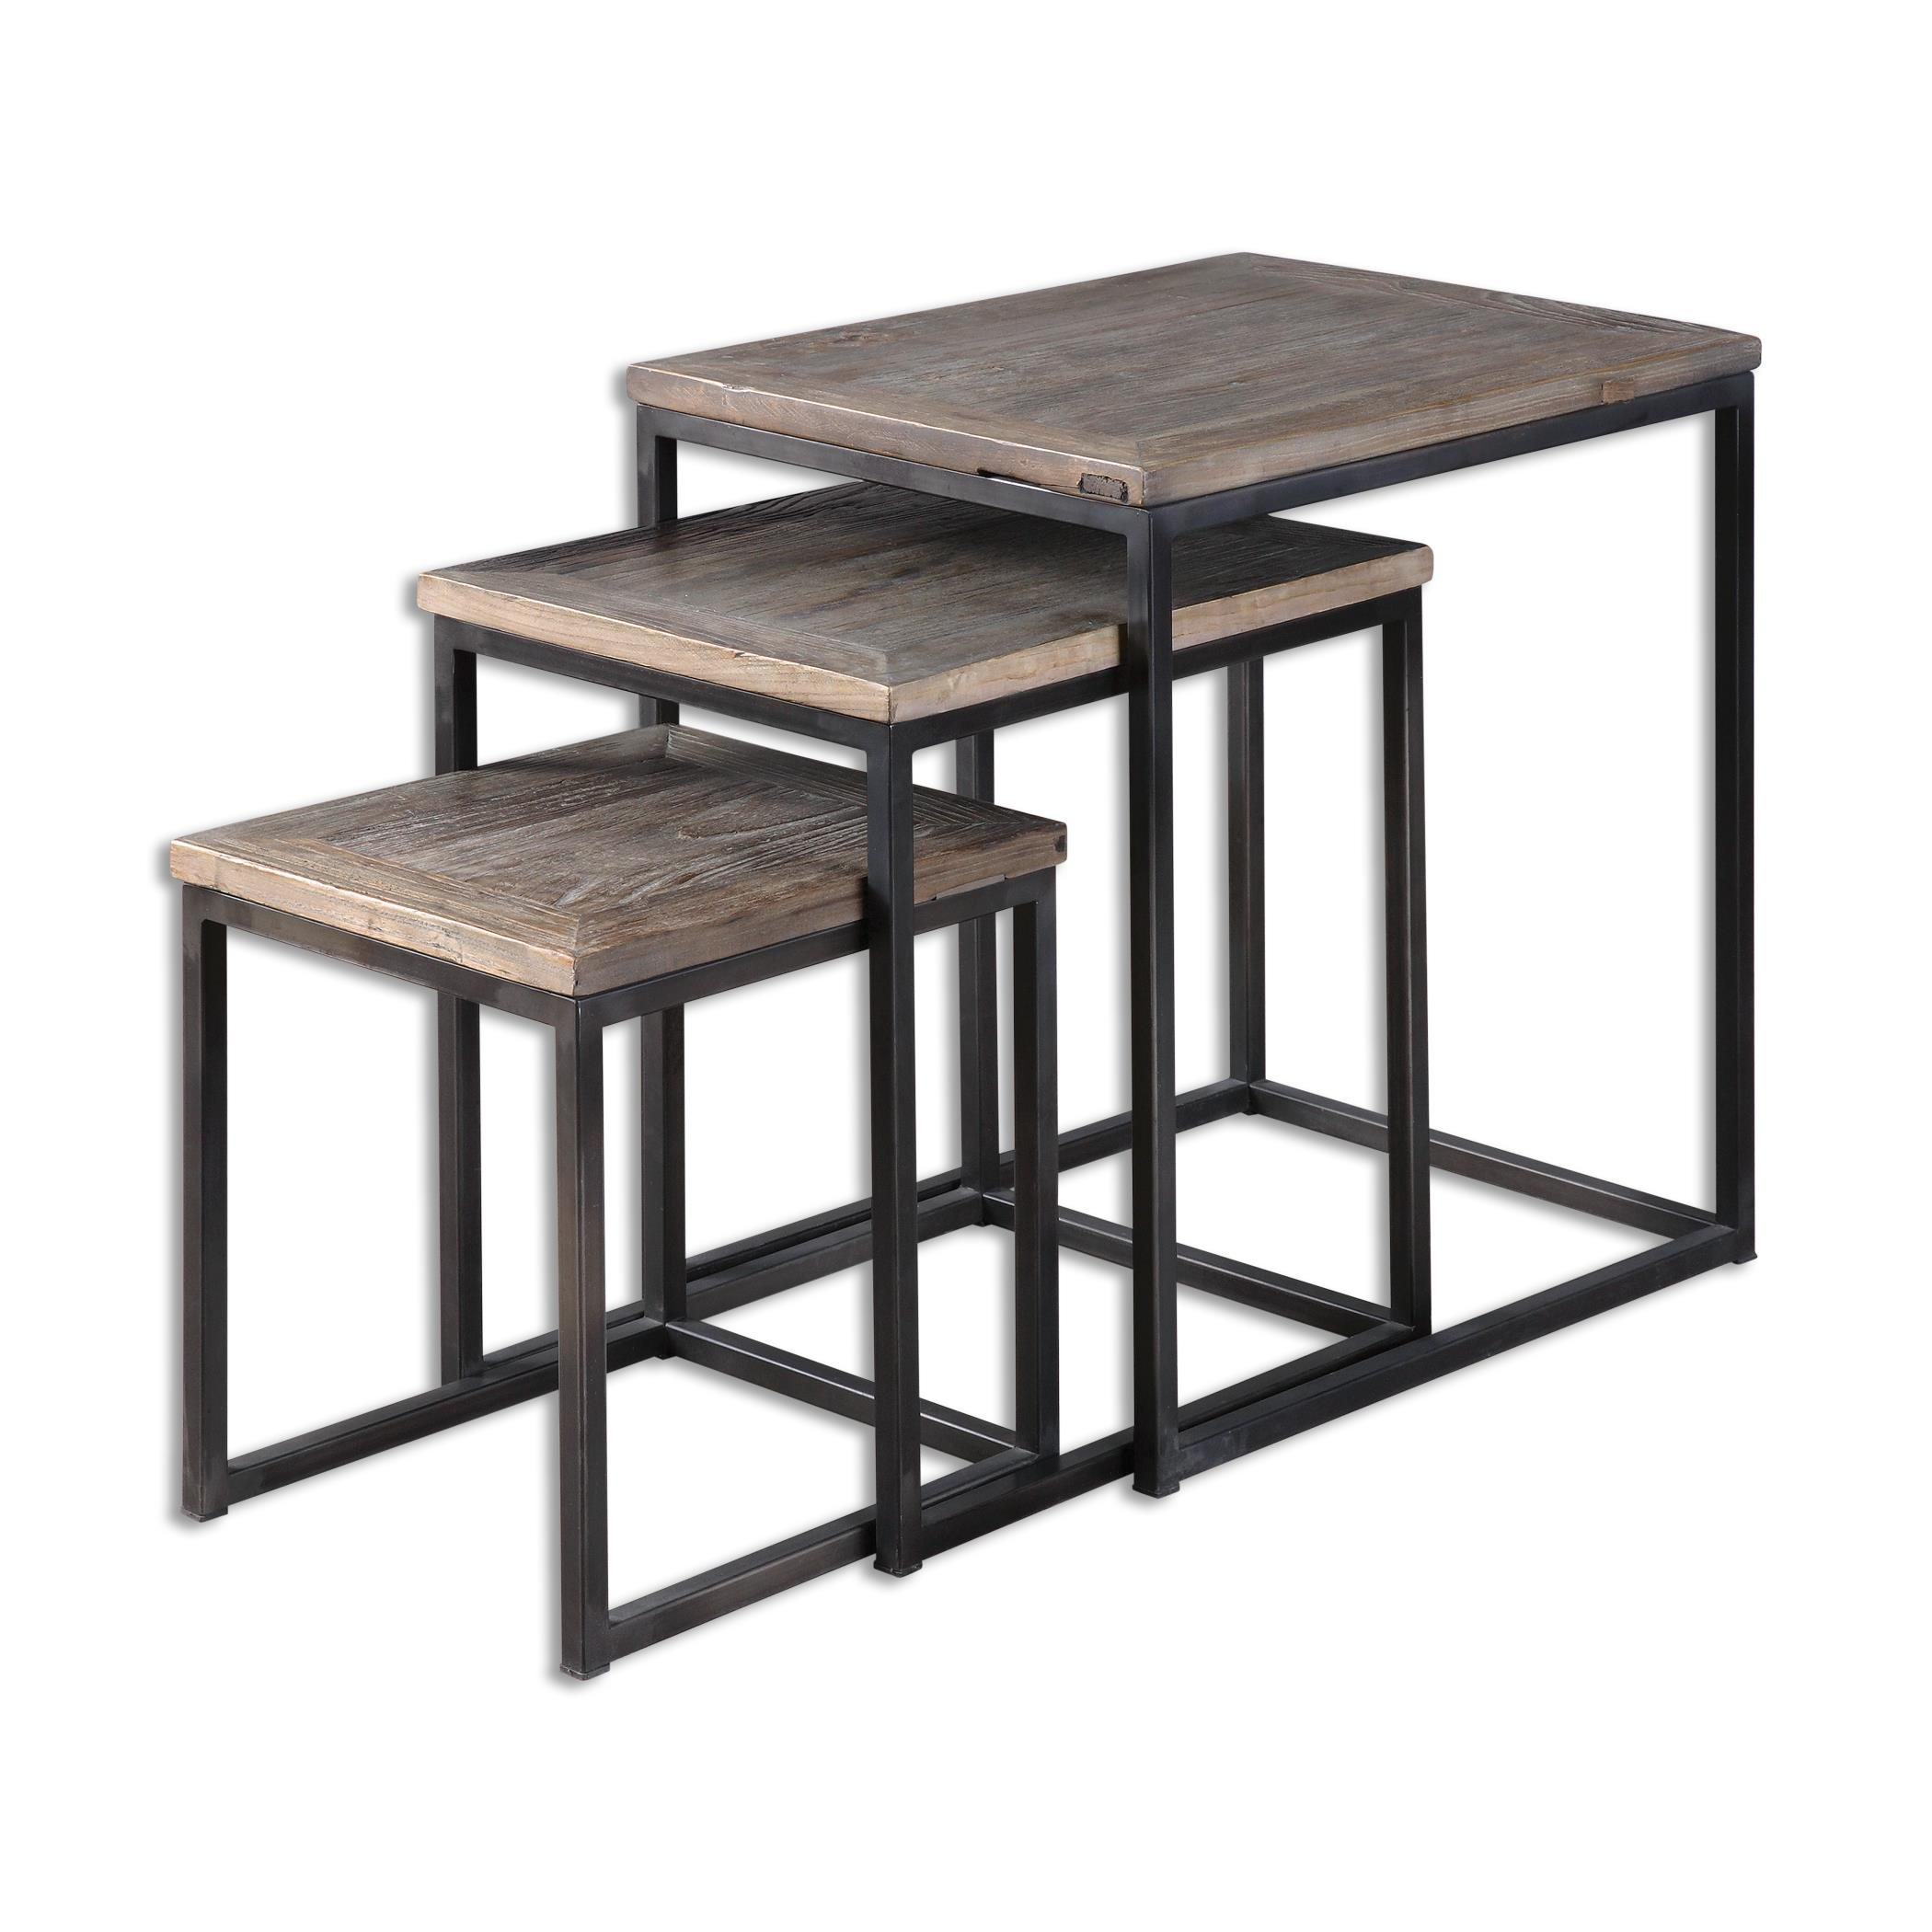 Uttermost Accent Furniture Bomani Wood Nesting Tables Set/3 - Item Number: 24460